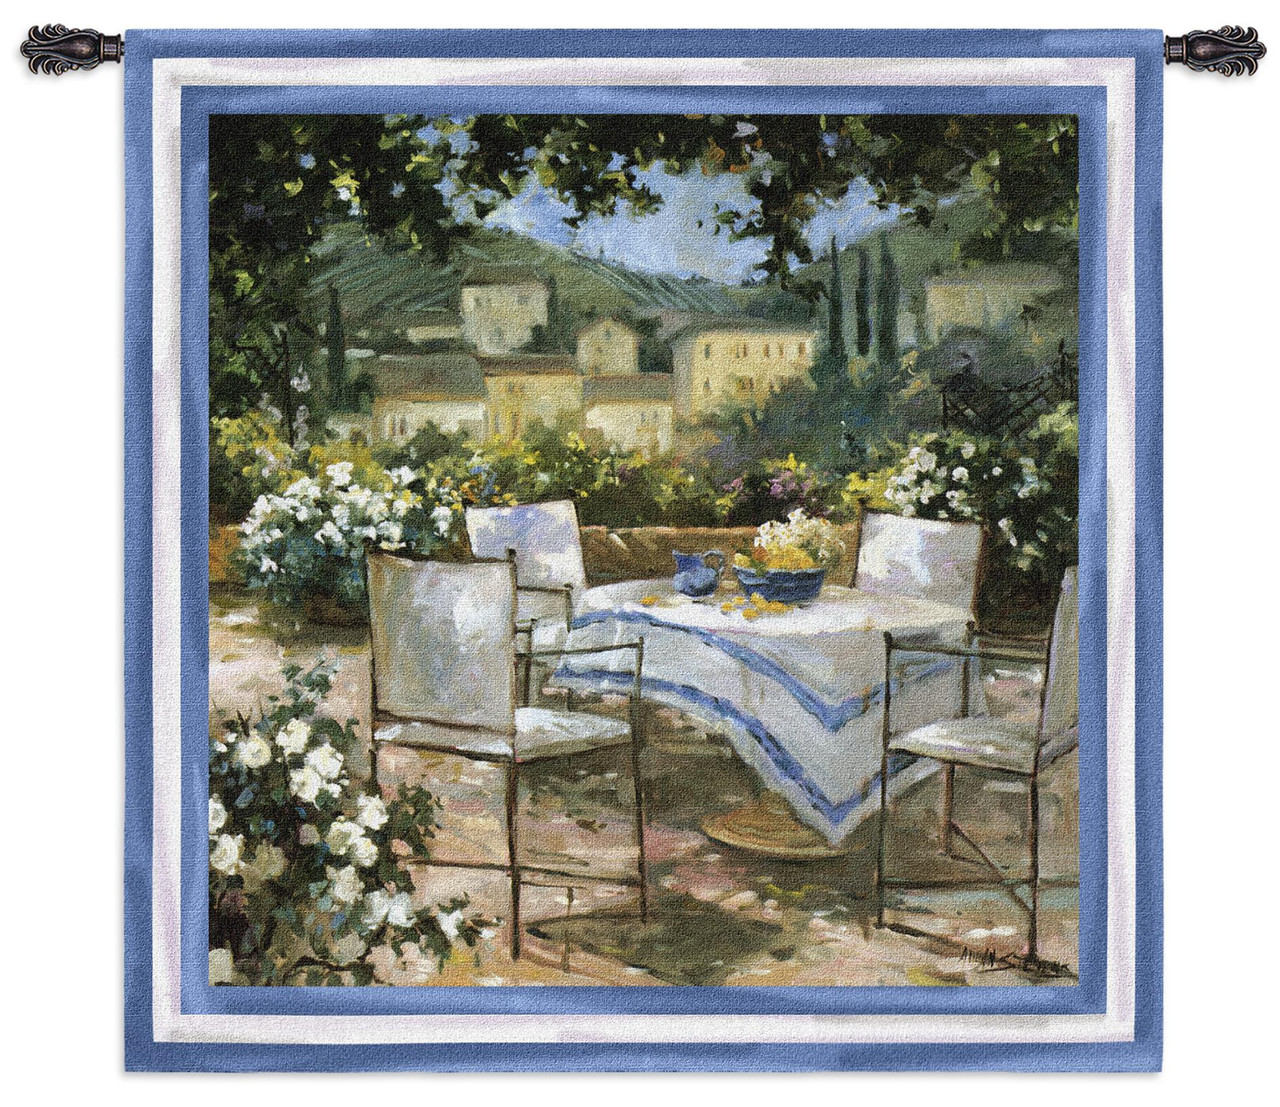 Tuscany Terrace Woven Tapestry Wall Art Hanging Gorgeous Italian Villa Outdoor Table 100 Cotton Usa Size 53x53